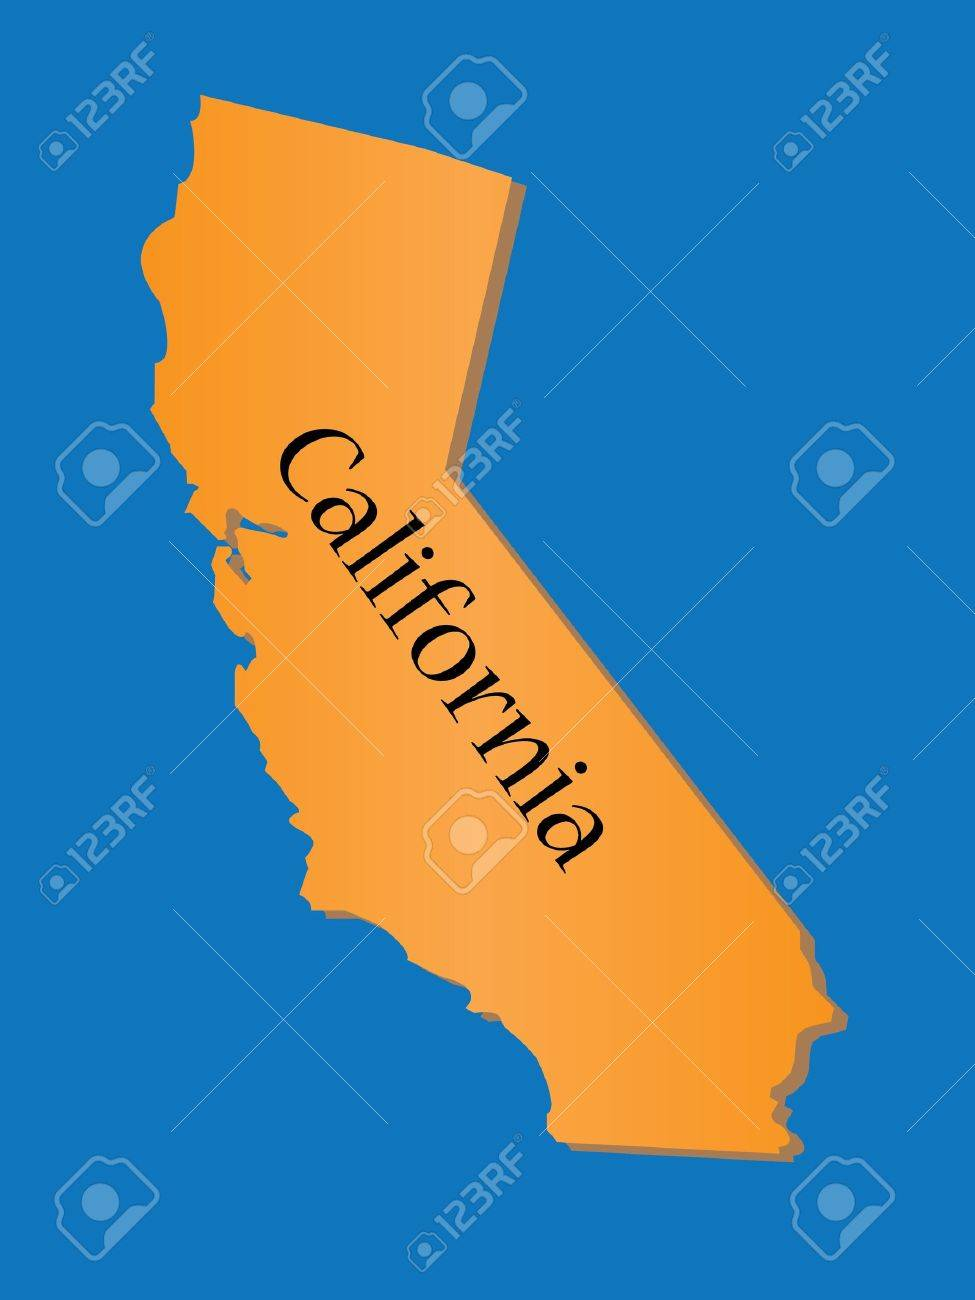 California State Map Stock Vector - 10736469